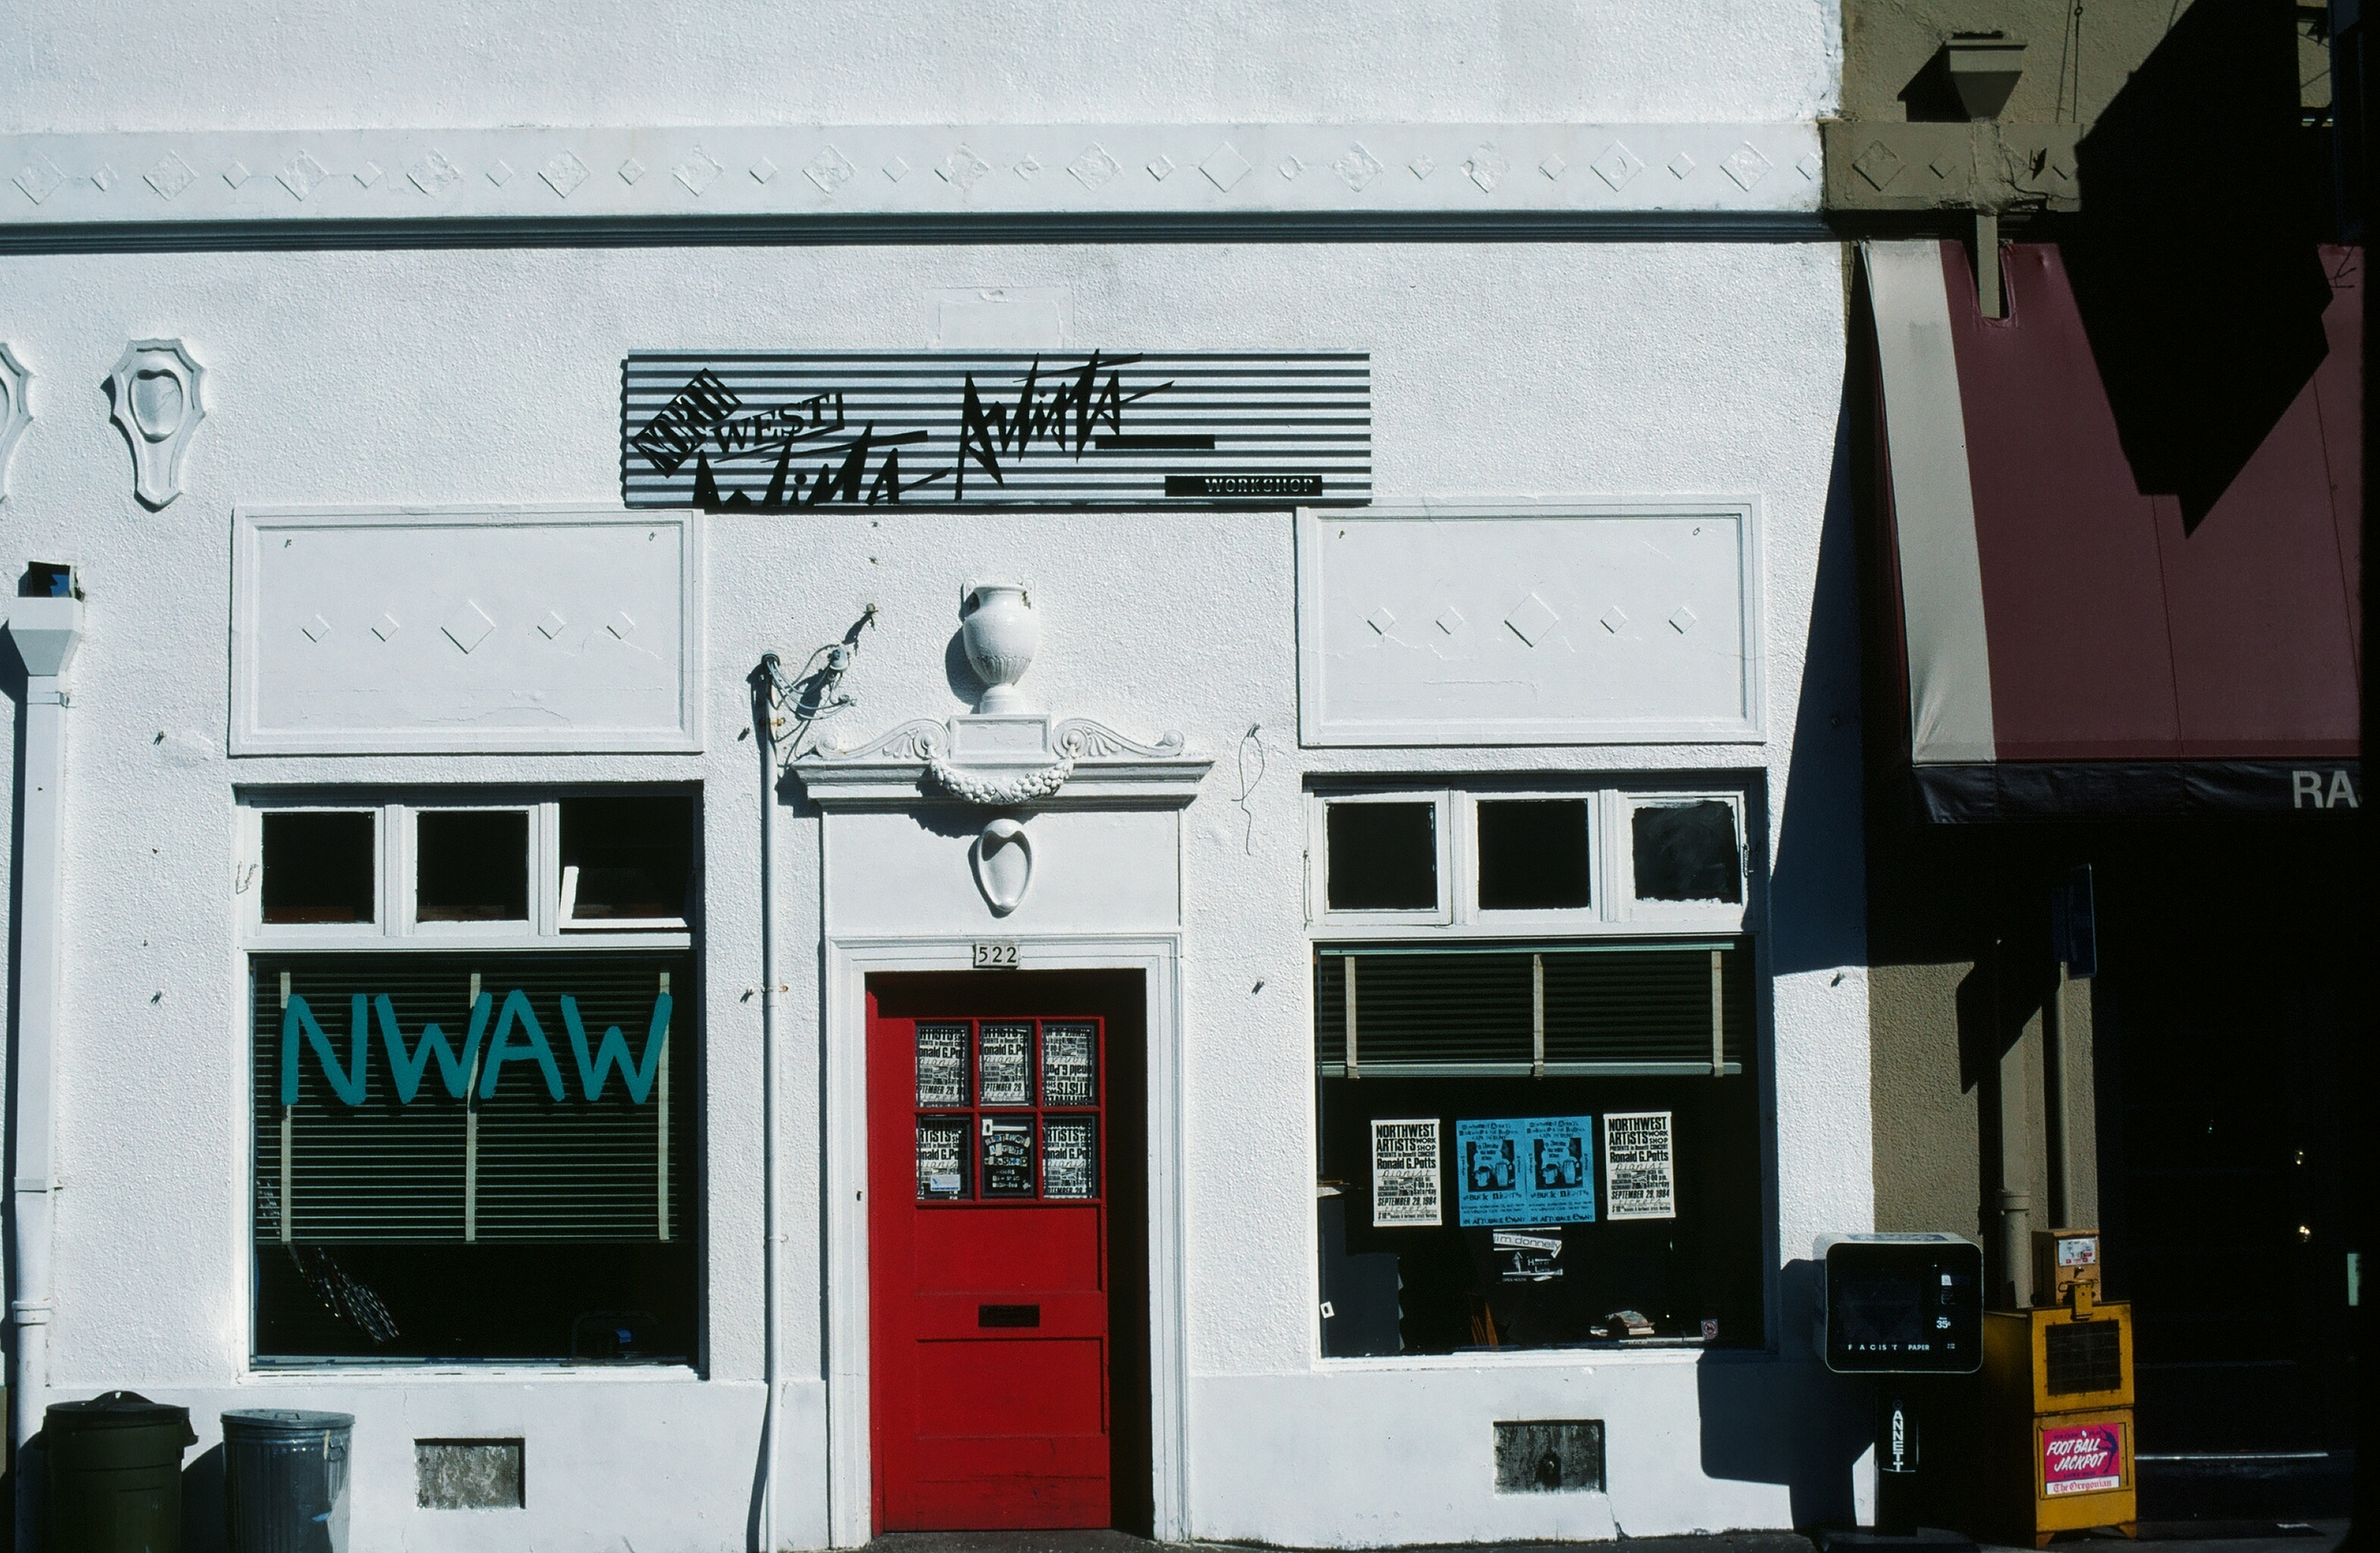 In the 1980s, The Northwest Artists Workshhop was located on NW 12th Street next to the Quartersaw Gallery. The workshop provided local artists a place to meet and exchange ideas. The building later became the Pulliam Deffenbaugh Gallery